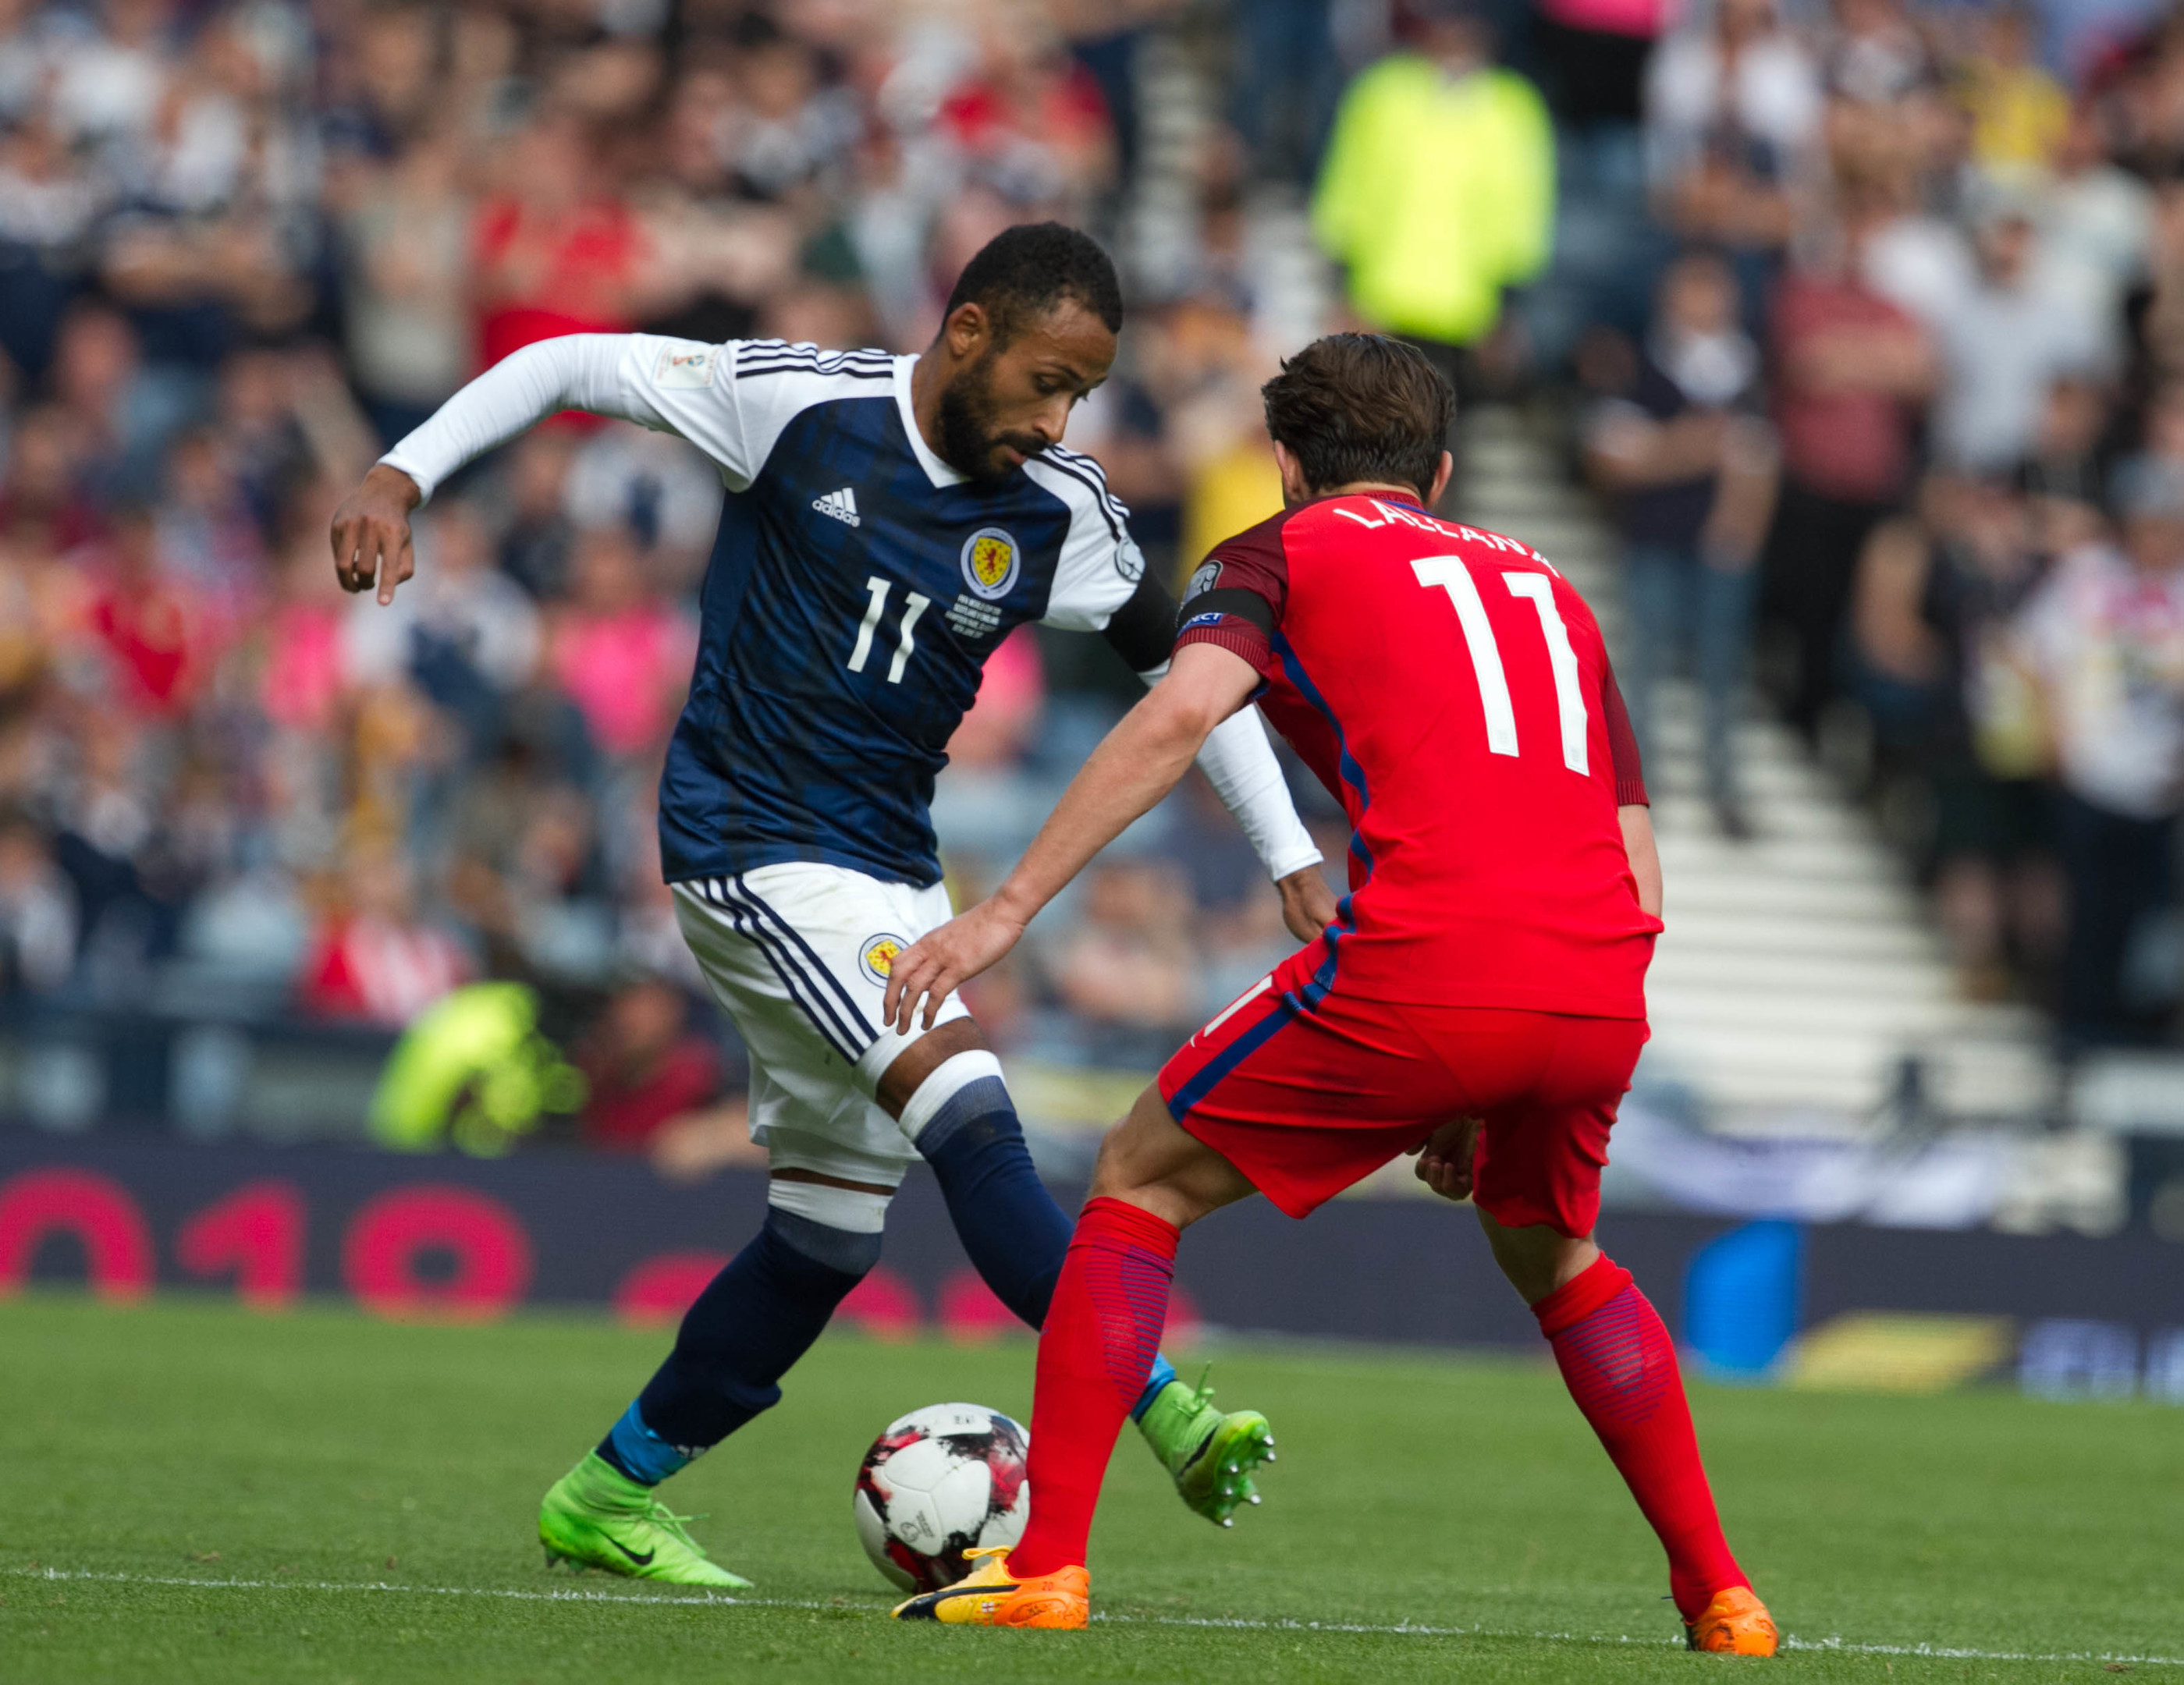 Ikechi Anya and Adam lallana during the 2018 World Cup Final qualifications at Hampden Park (iStock)